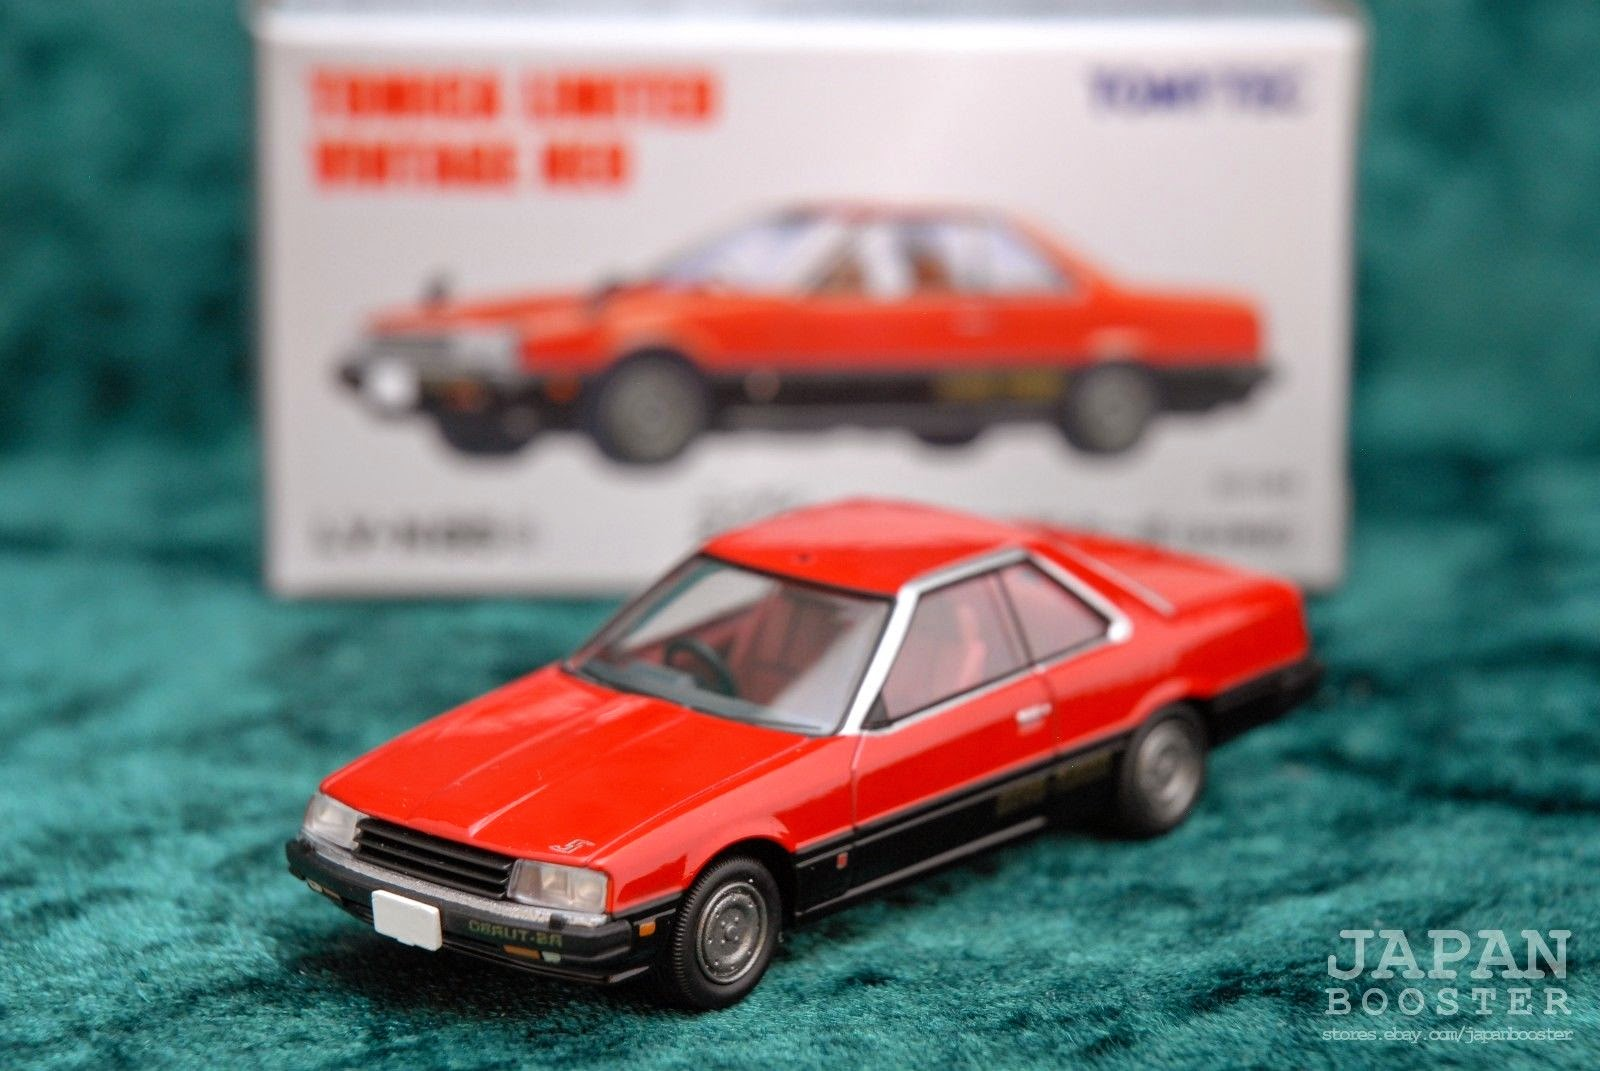 Car Lamley Group Just Listed At Japan Booster Tomica Limited Vintage Mercedes Audi Nissan Z Toyota Corolla And Honda Civics